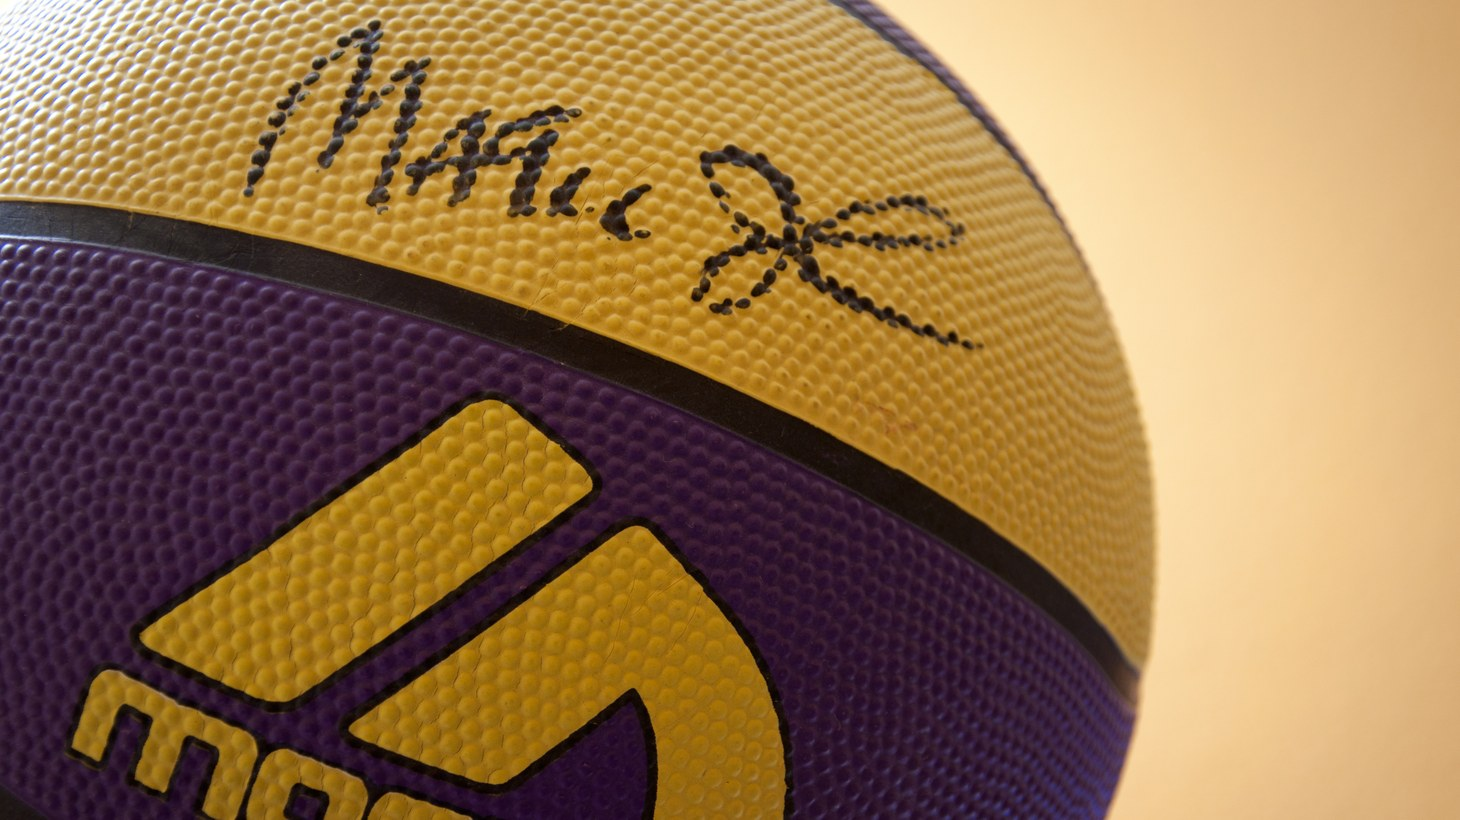 A basketball signed by Magic Johnson